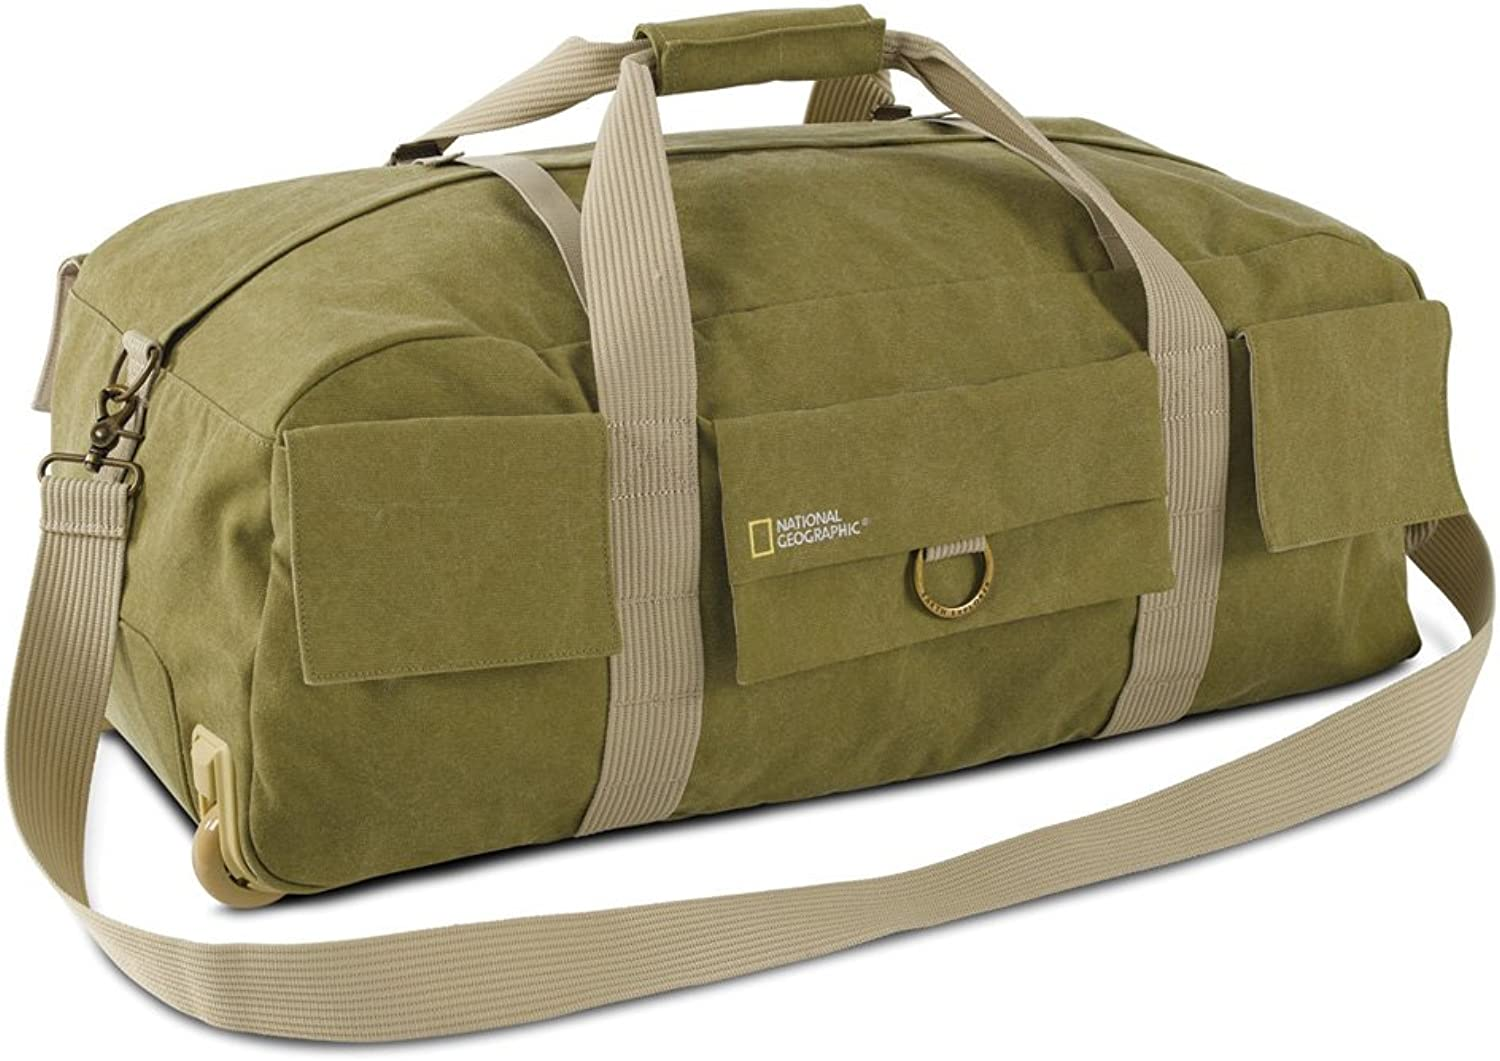 National Geographic NG 6130 Earth Explorer Duffel with wheels